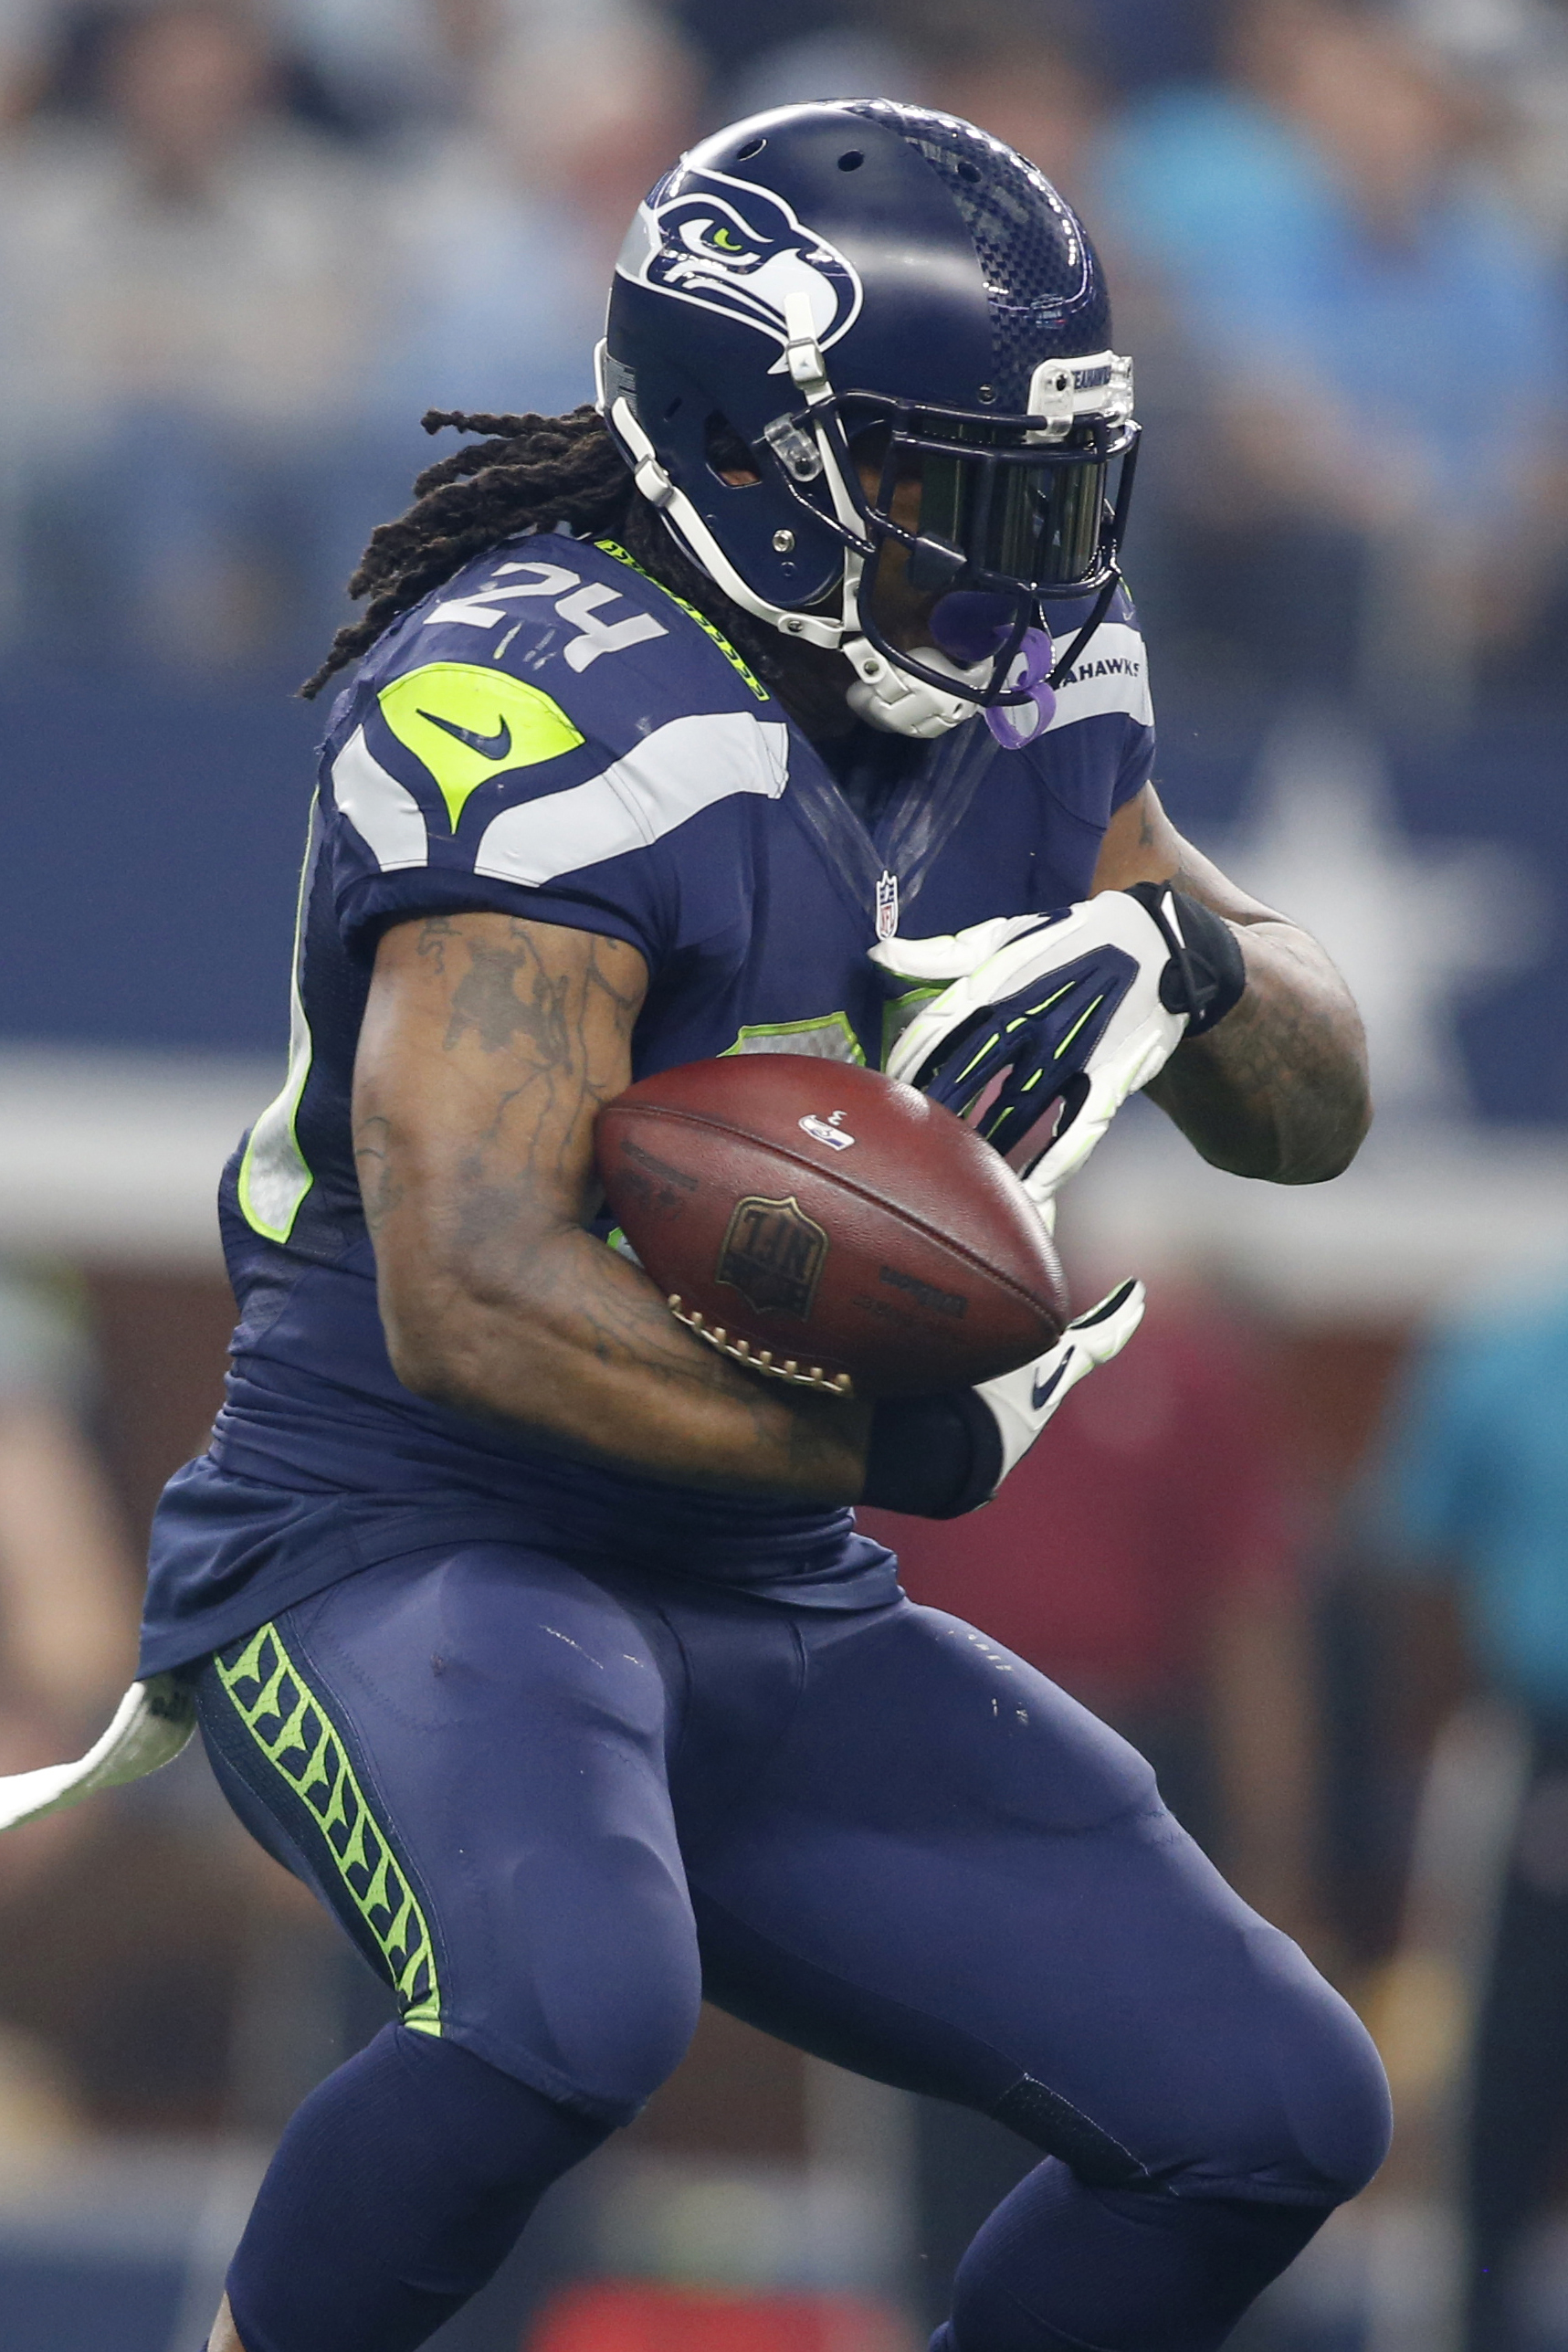 marshawn lynch wallpaper iphone